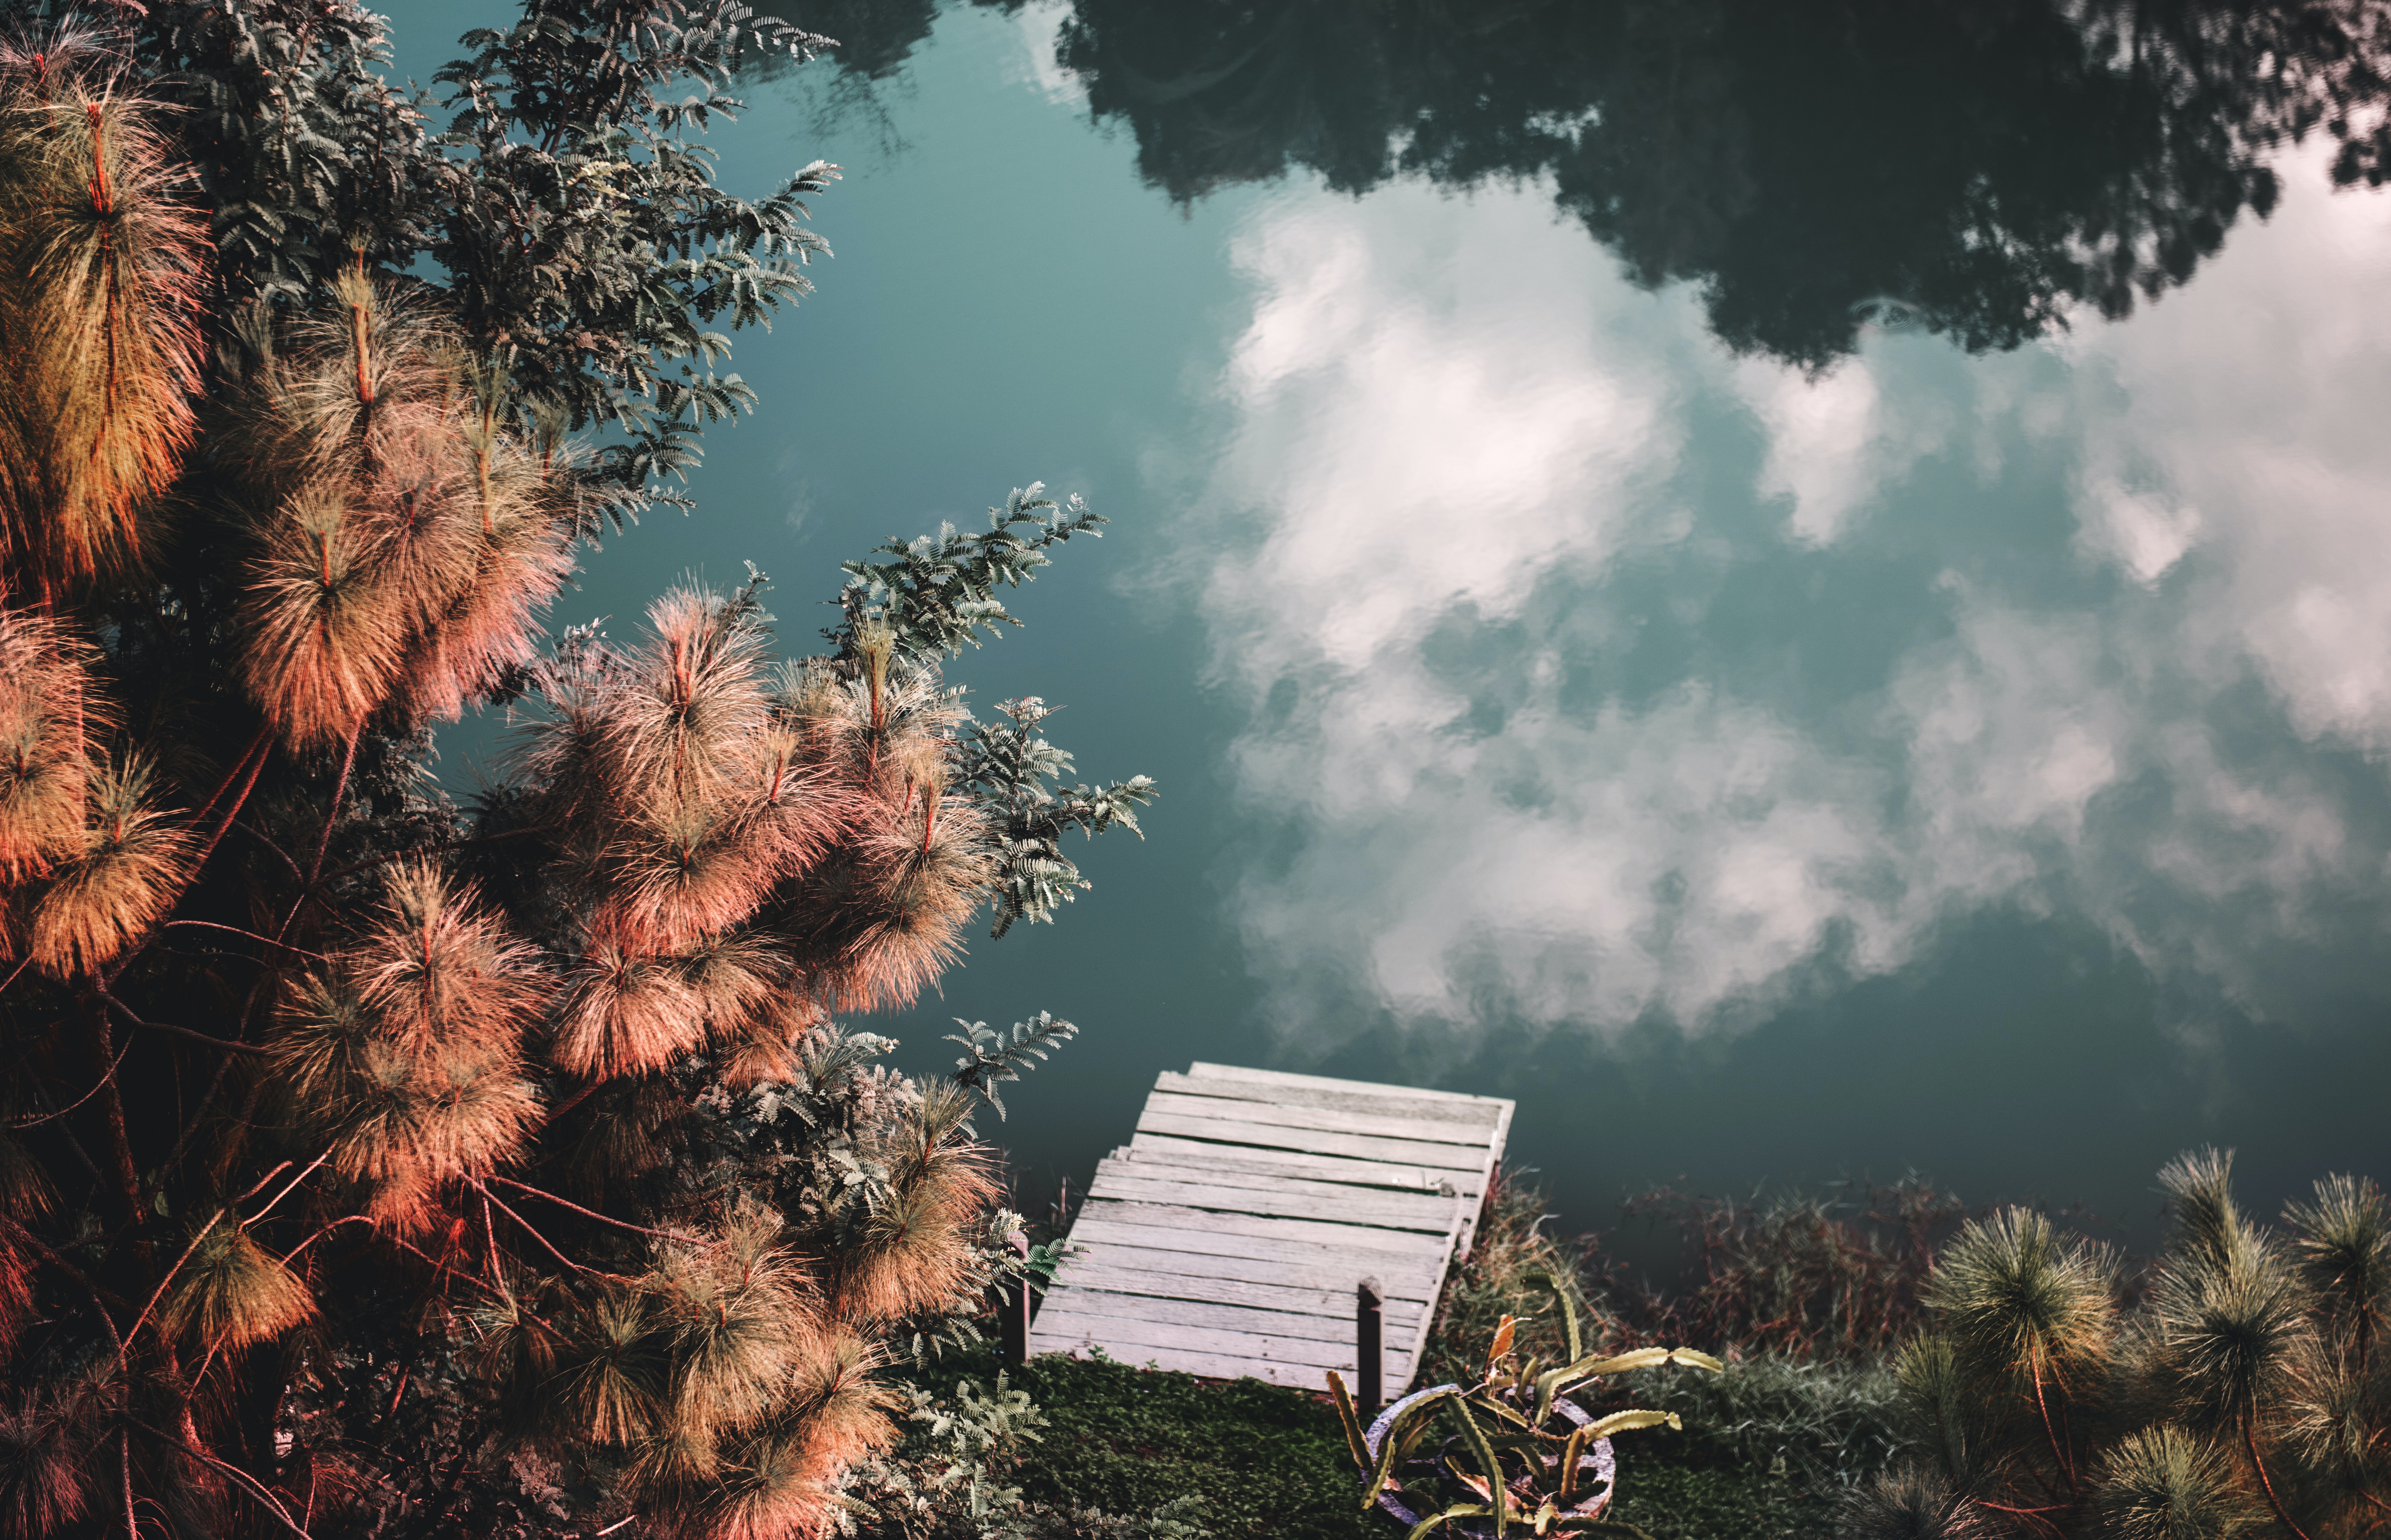 clouds reflecting on green body of water with white dock